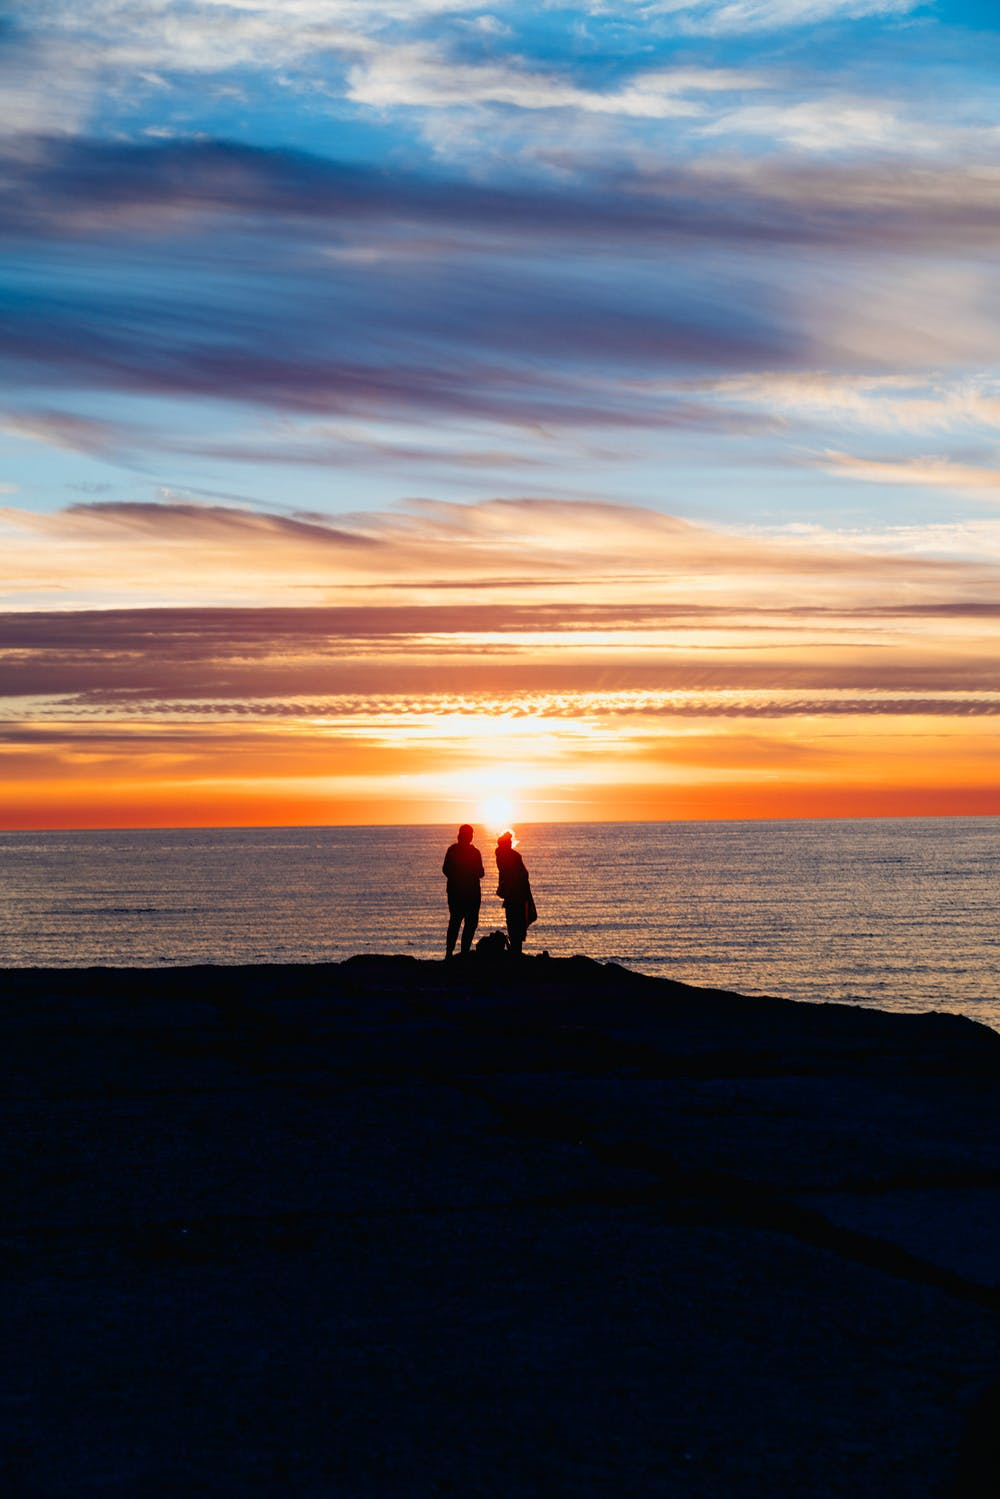 Two people at the edge of a rock during sunset at a beach